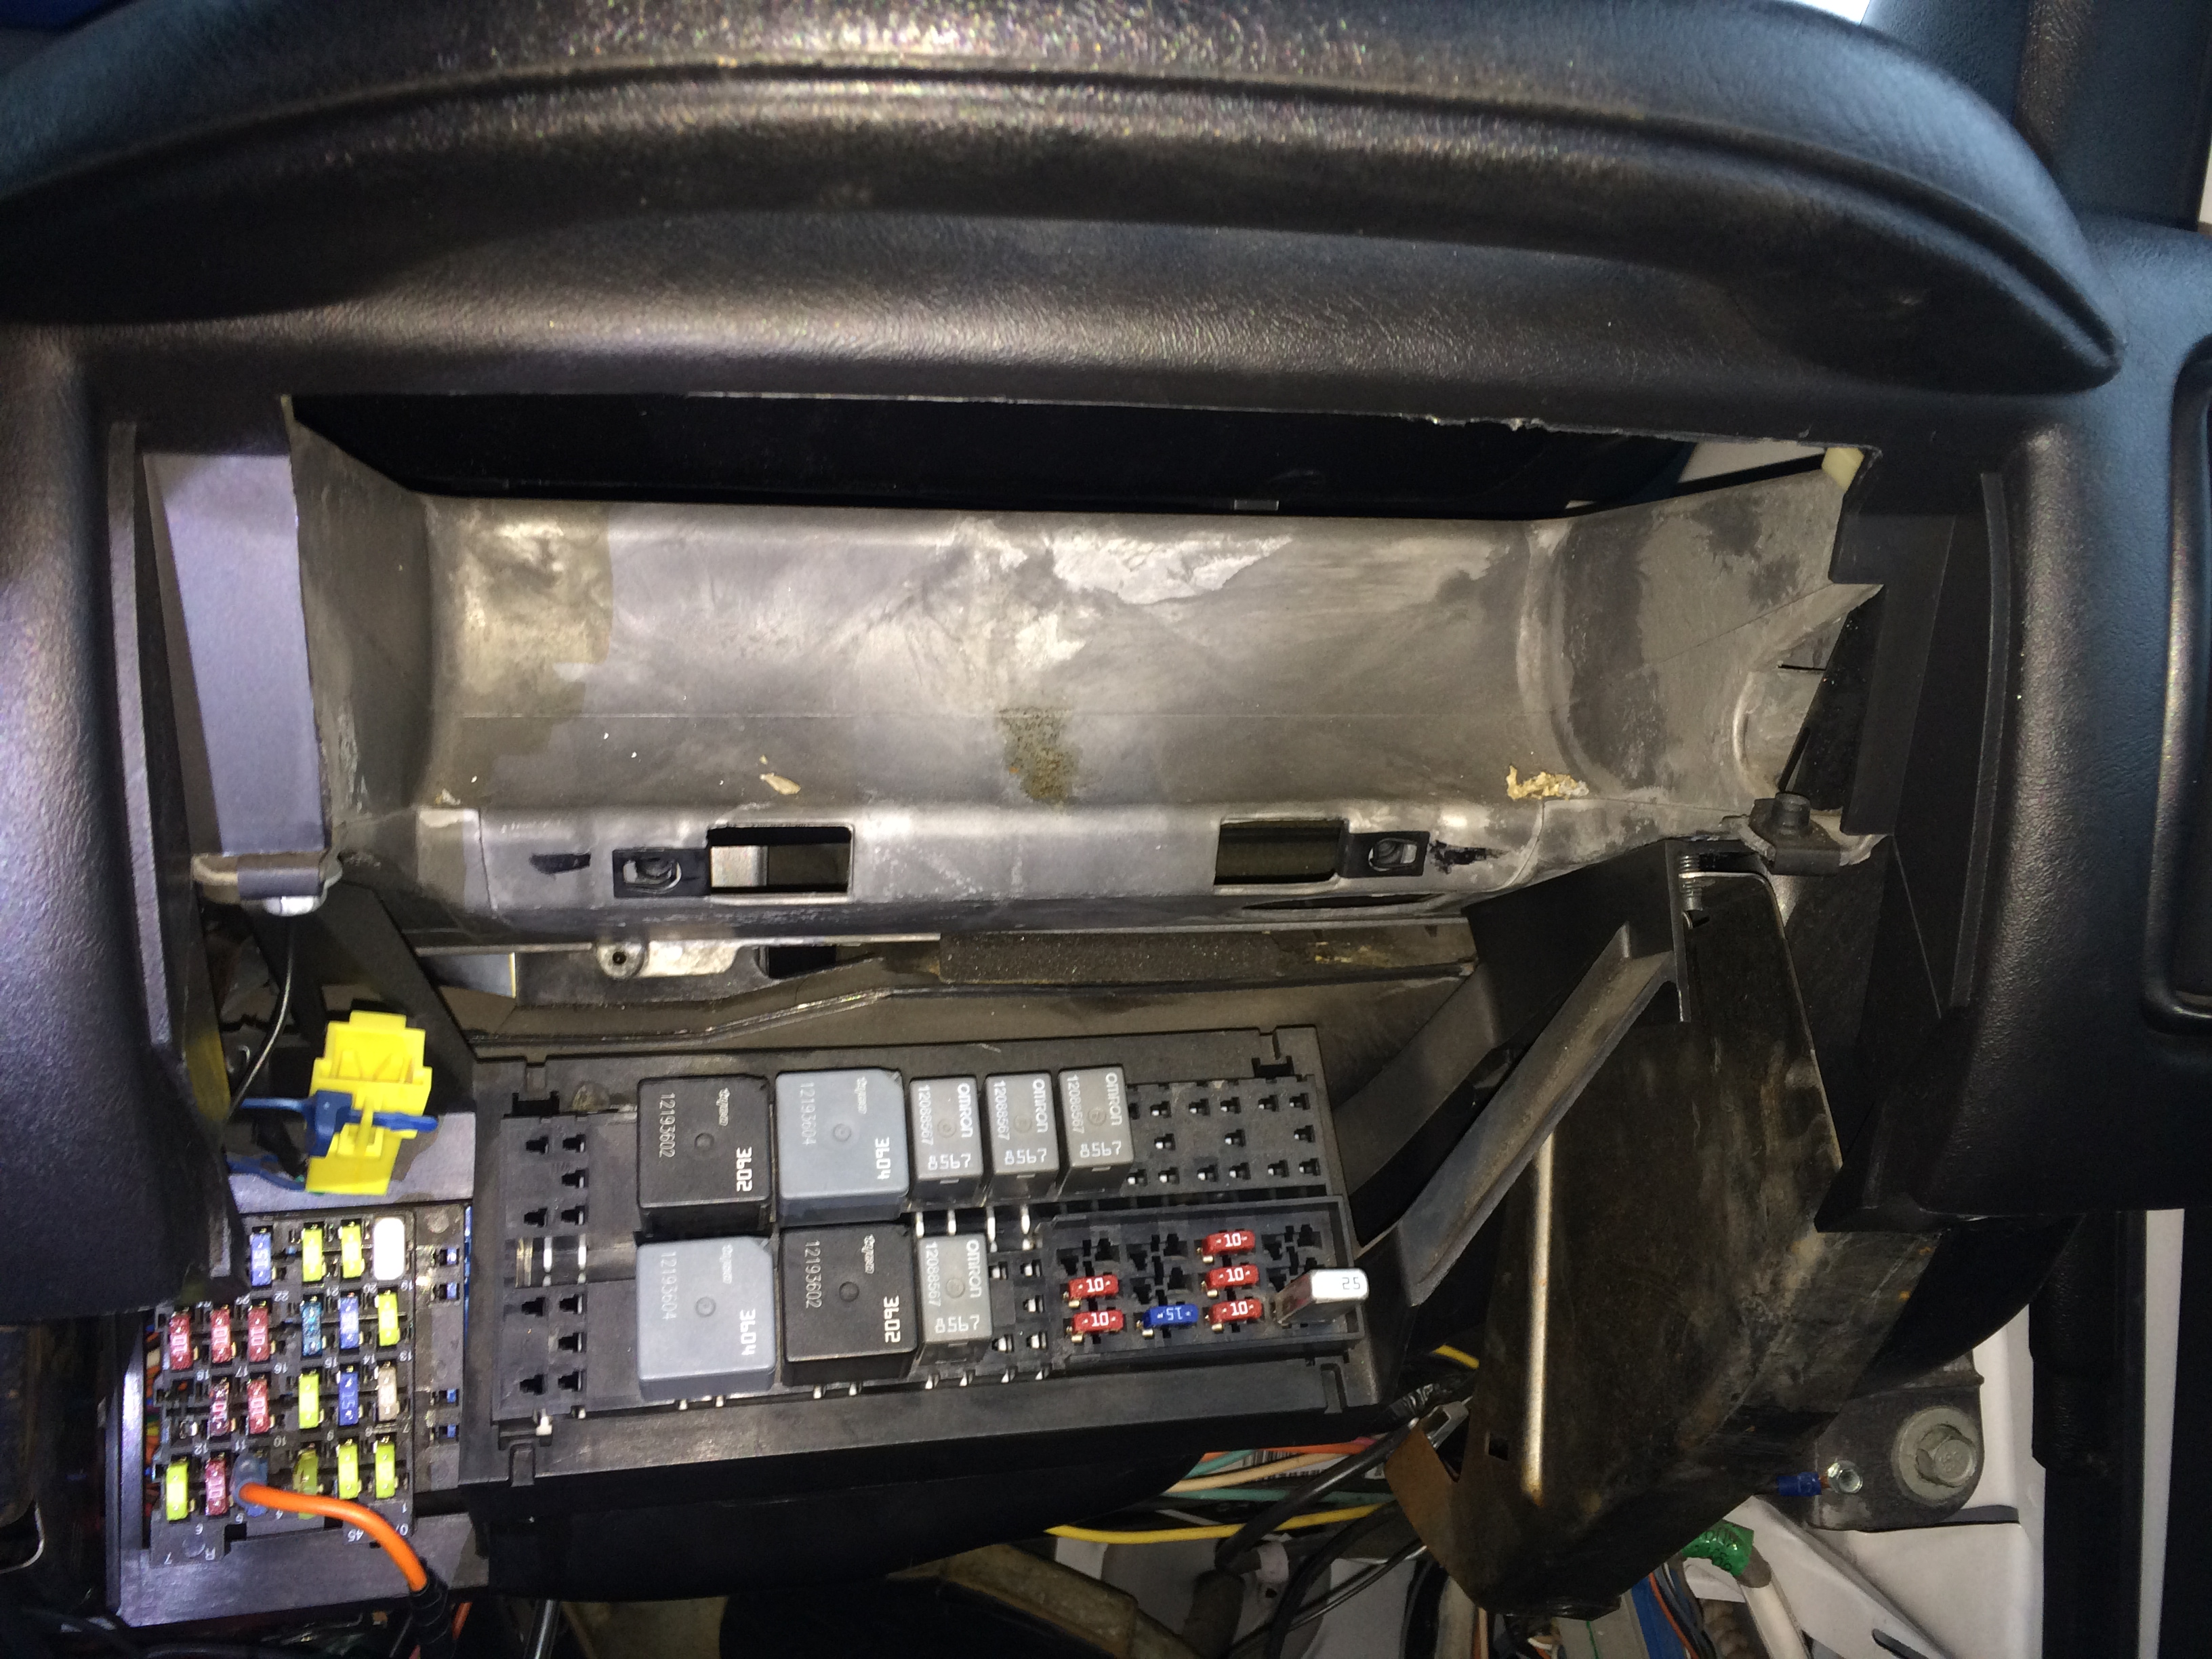 2006 Freightliner M2 Fuse Box Location